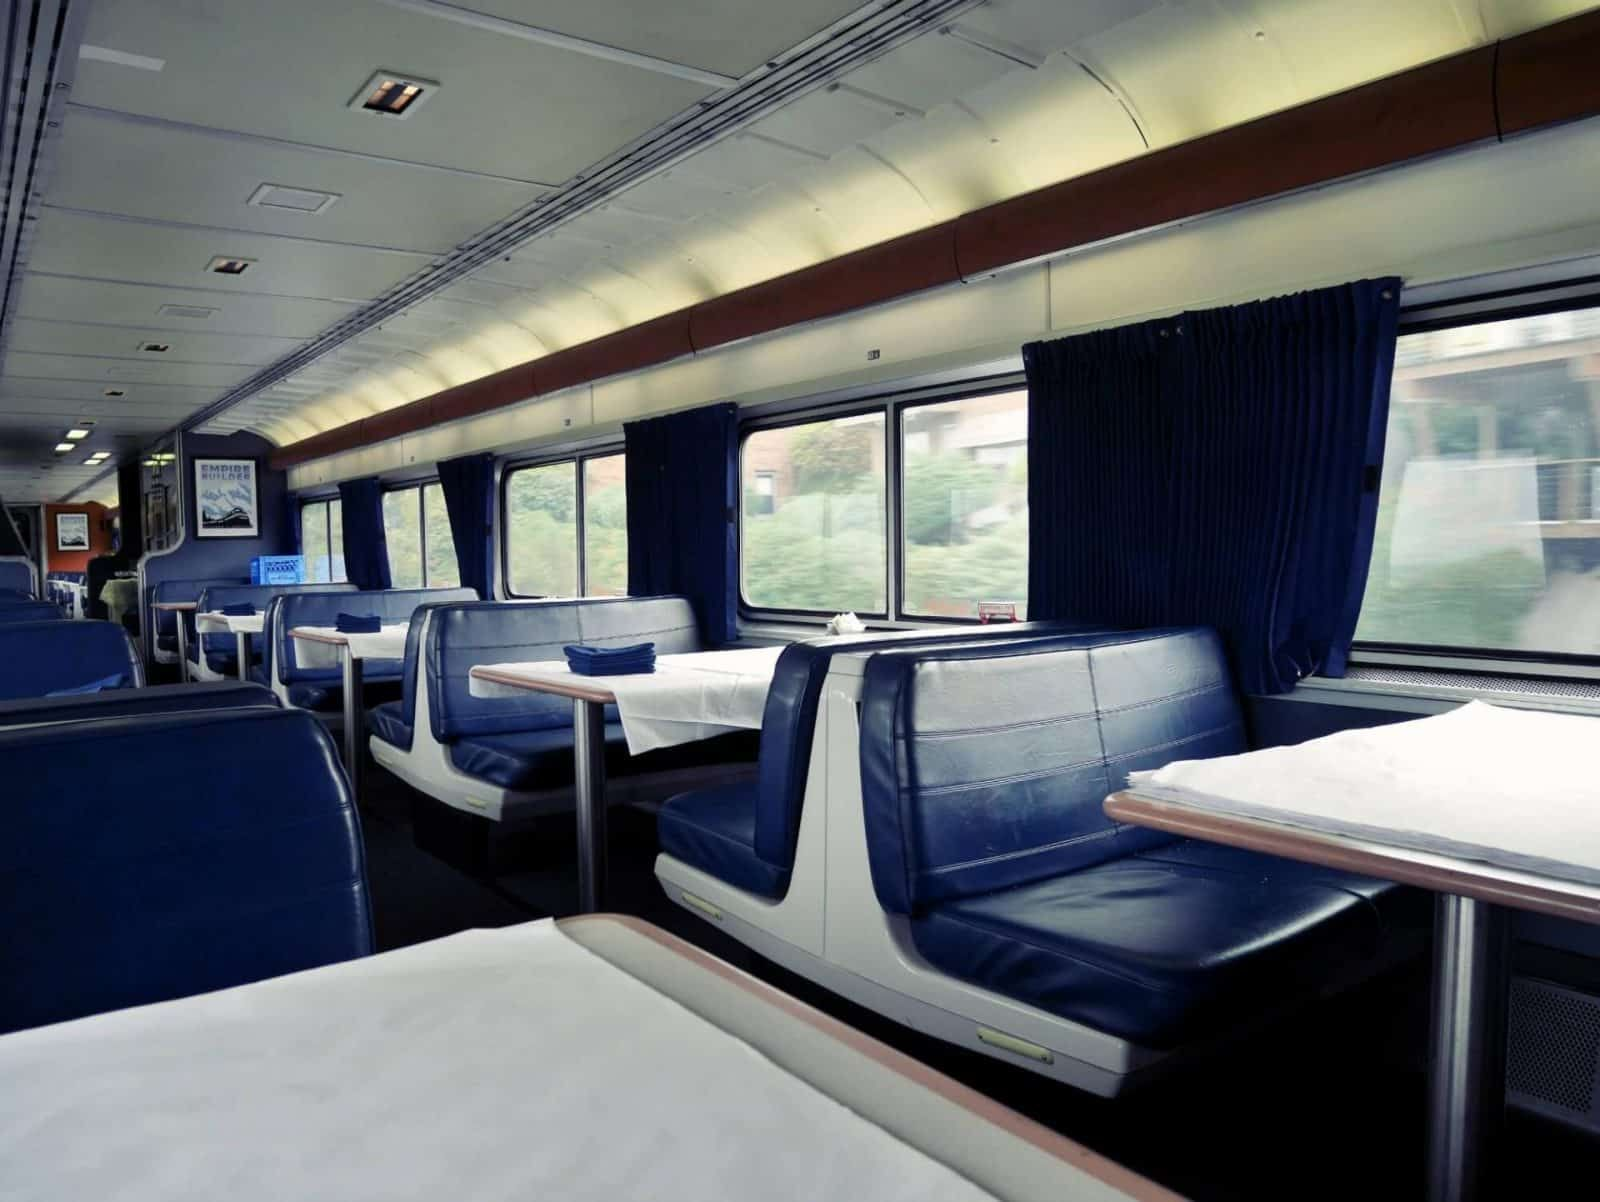 The Empire Builder: my top tips for taking the Amtrak train